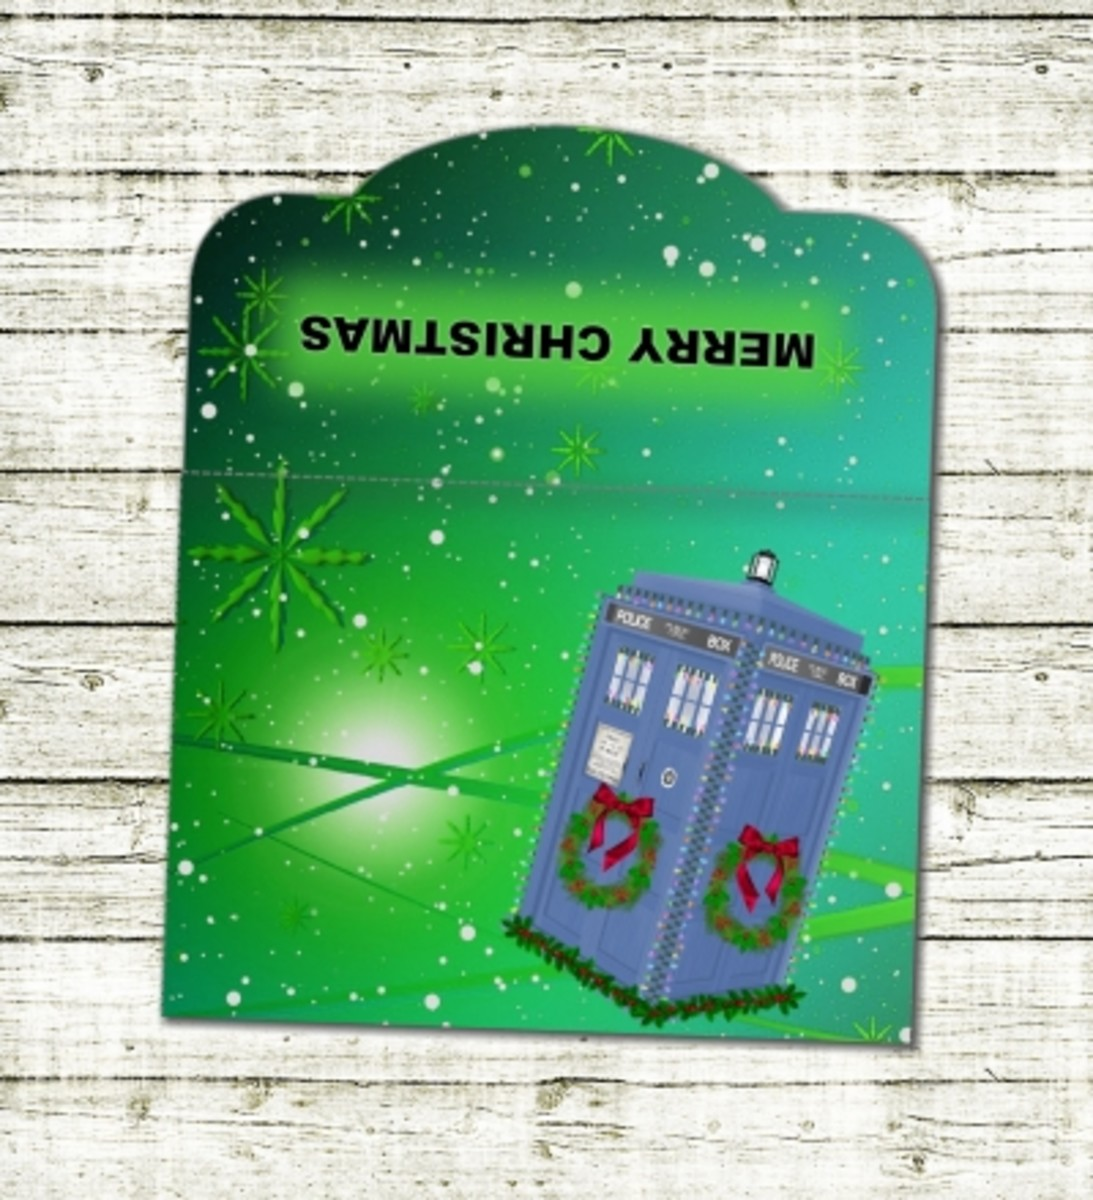 Printable Dr Who tardis Christmas money wallet